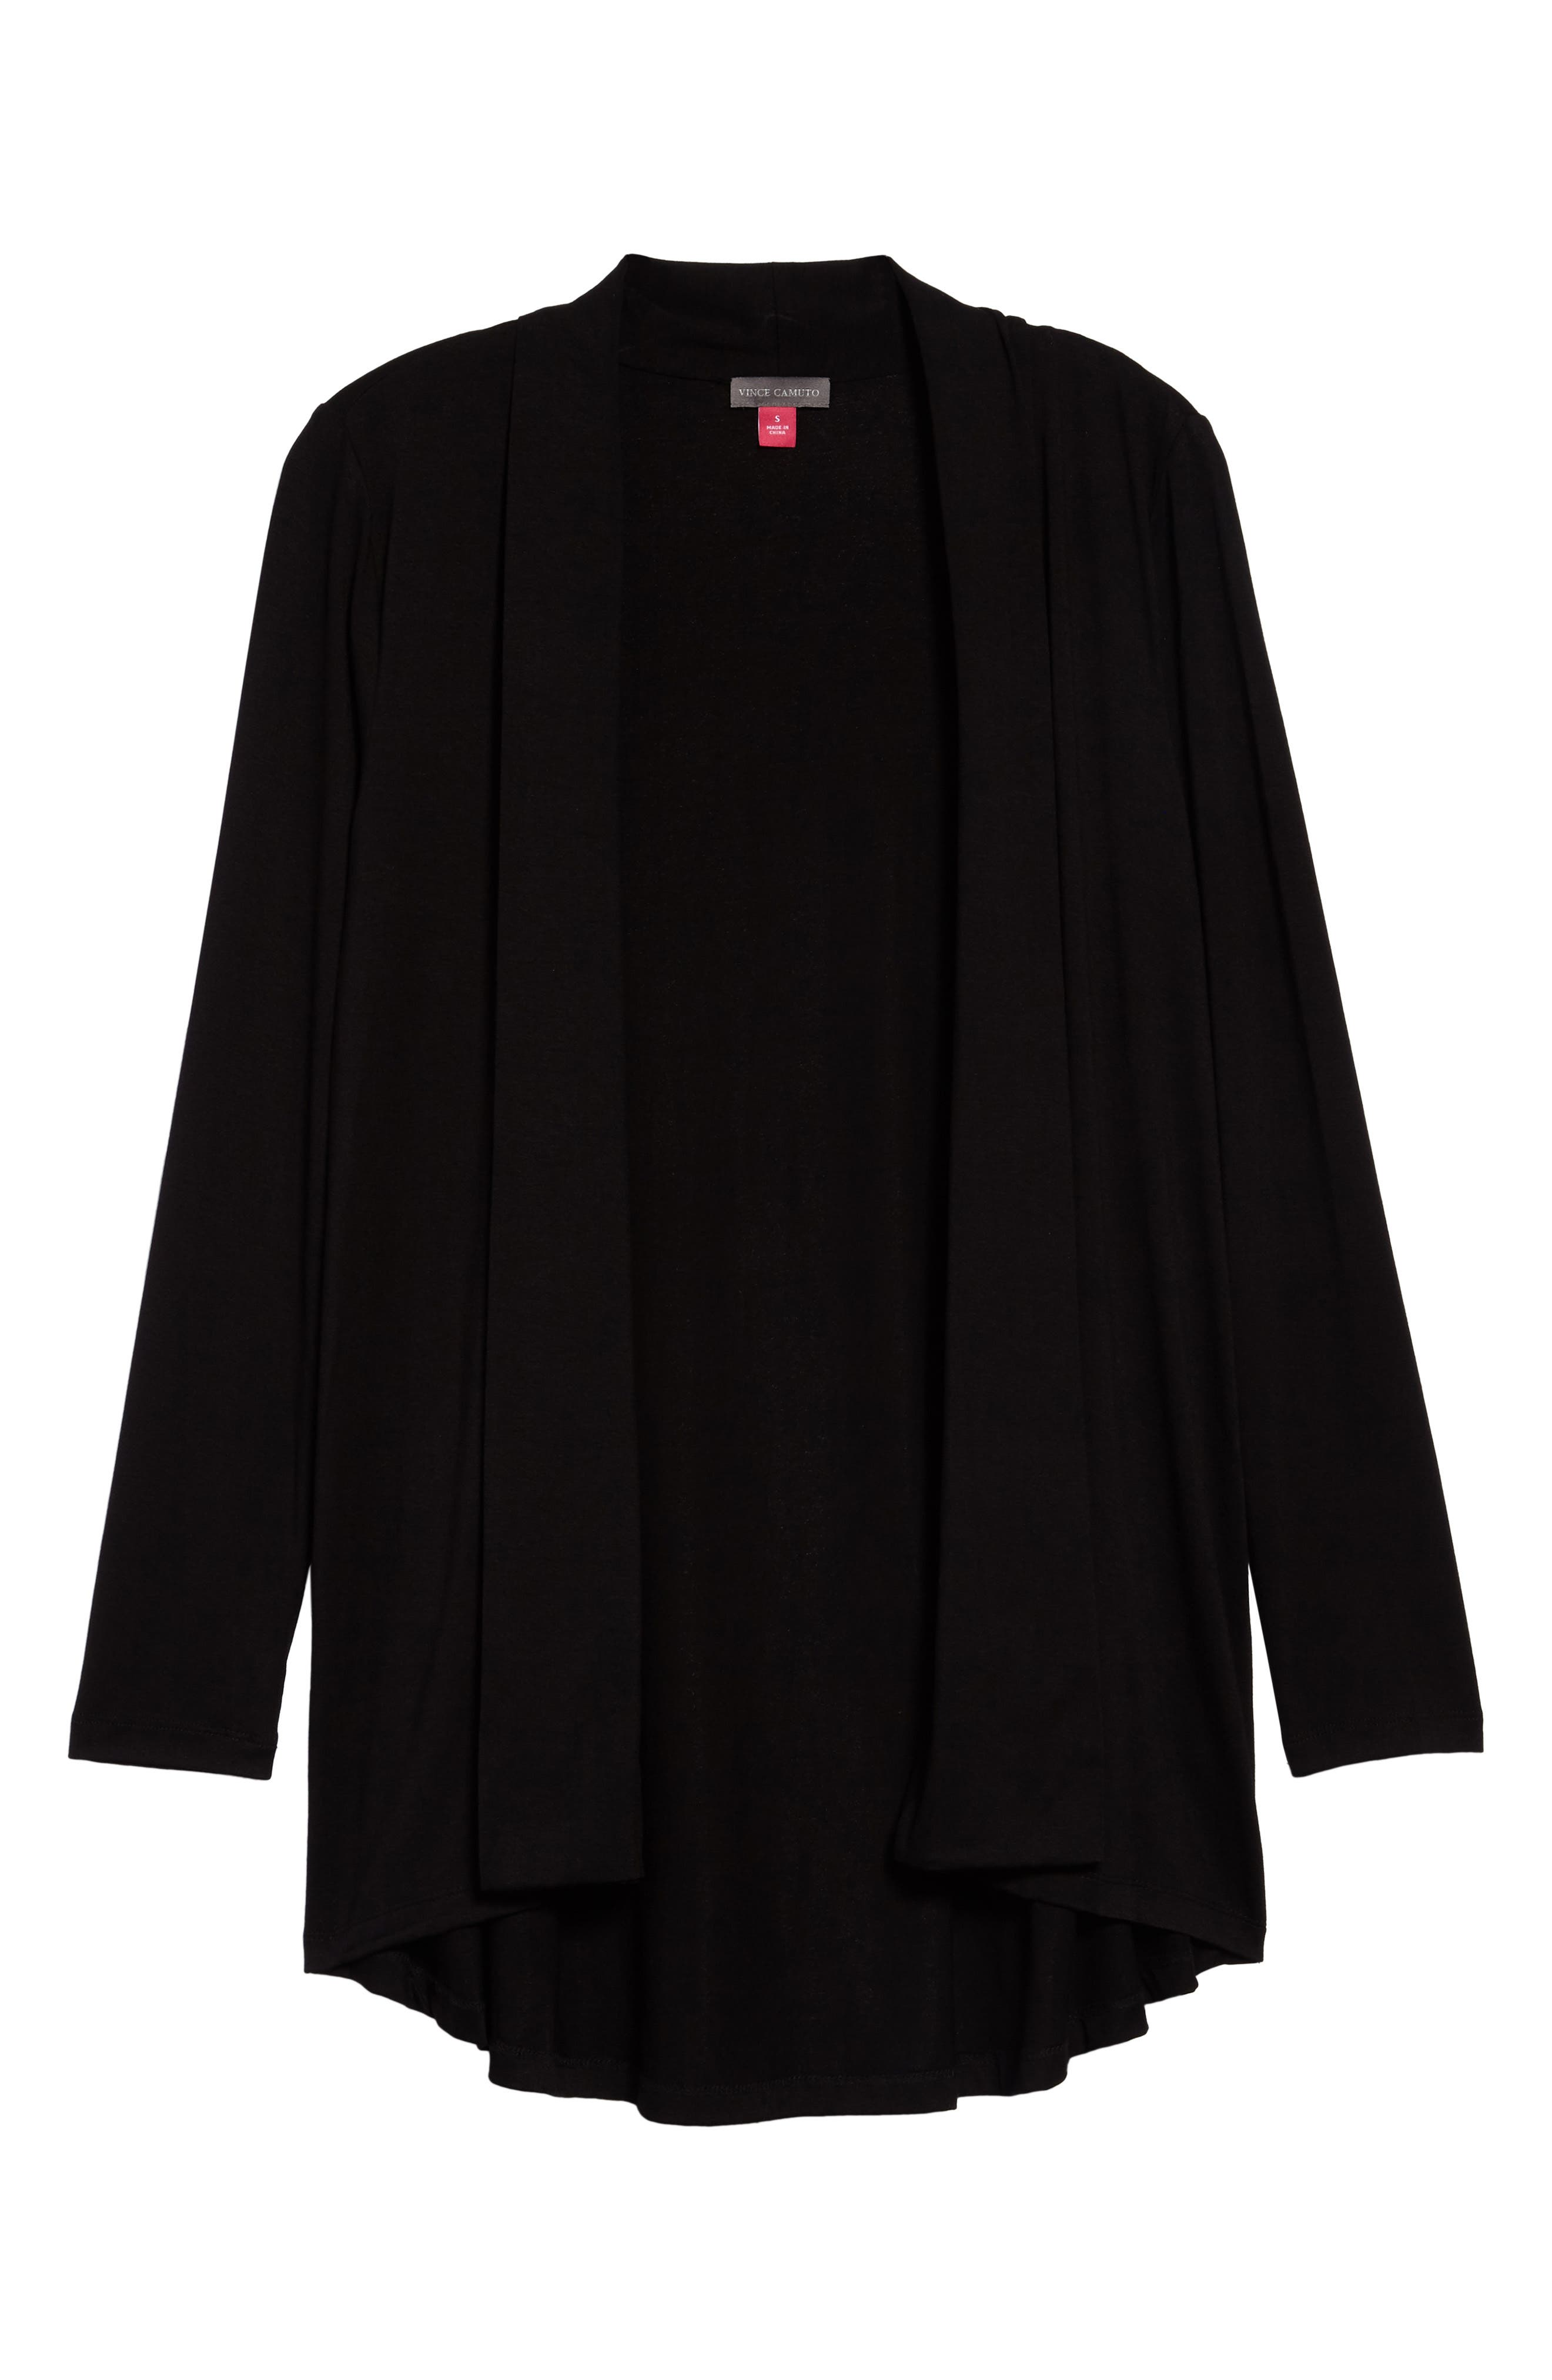 Vince Camuto Open Front Cardigan, Black